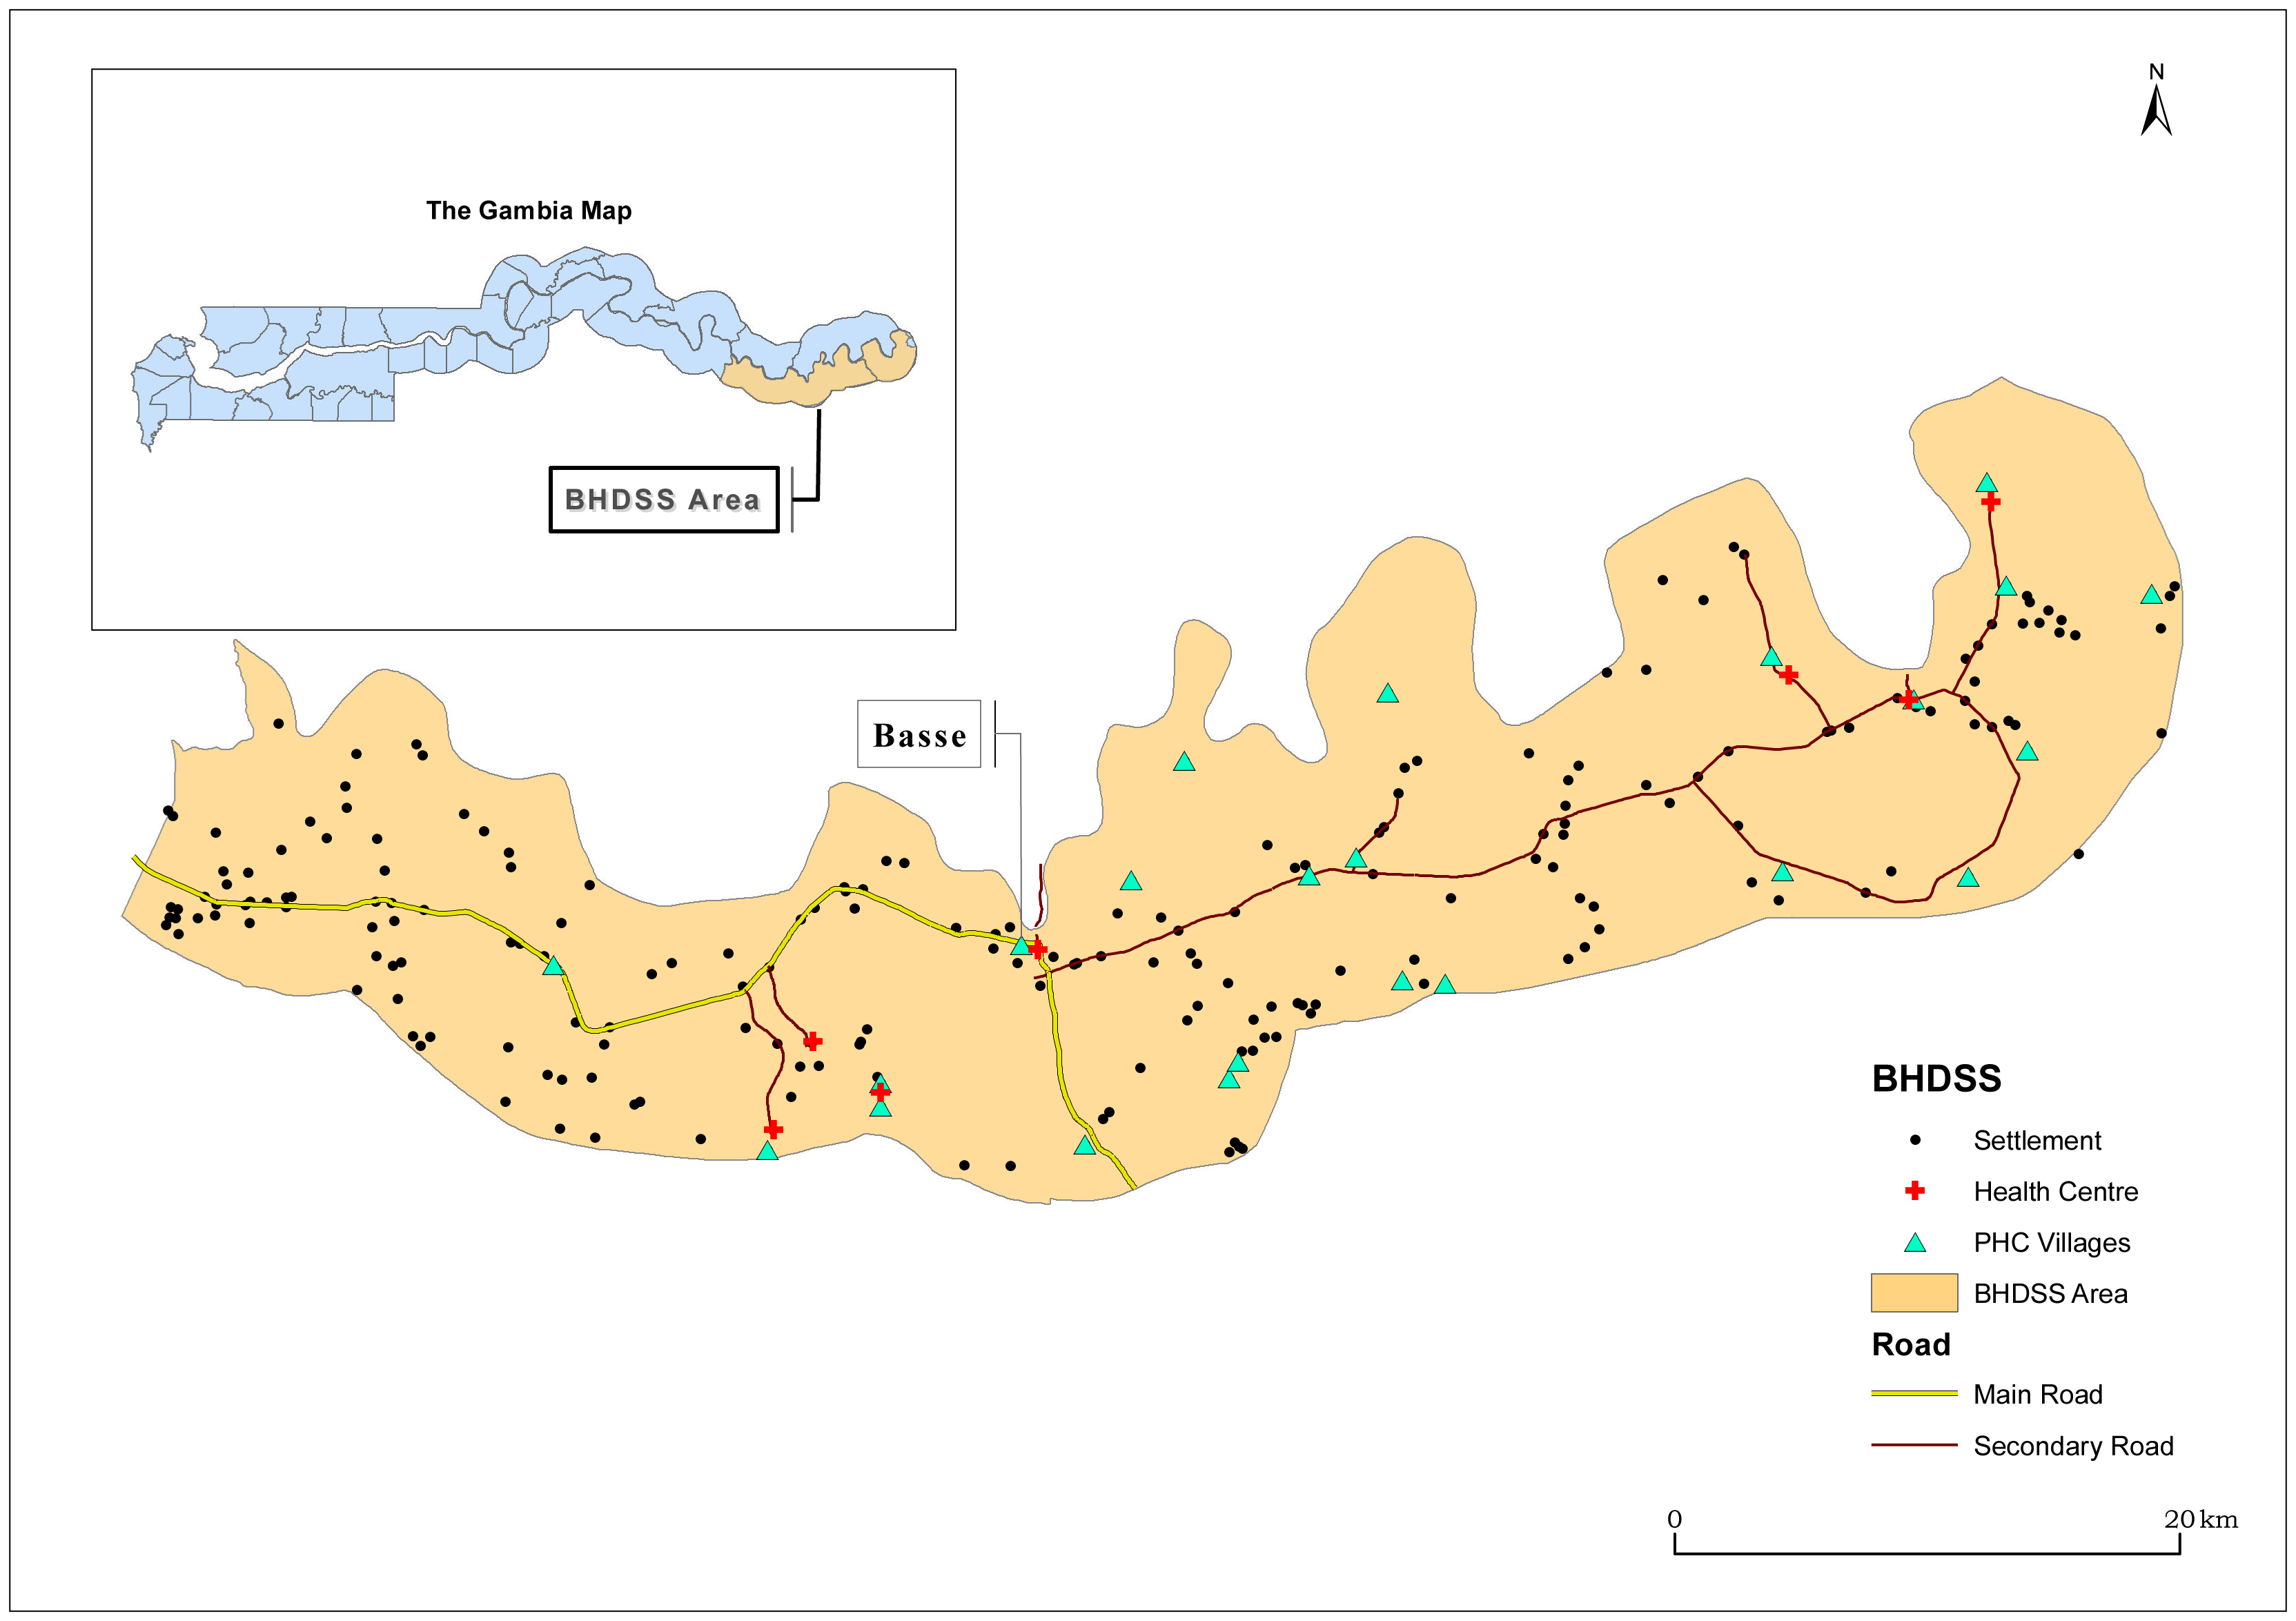 Map of catchment area for the surveillance system in The Gambia, including settlements, primary health care (PHC), and other health facilities.